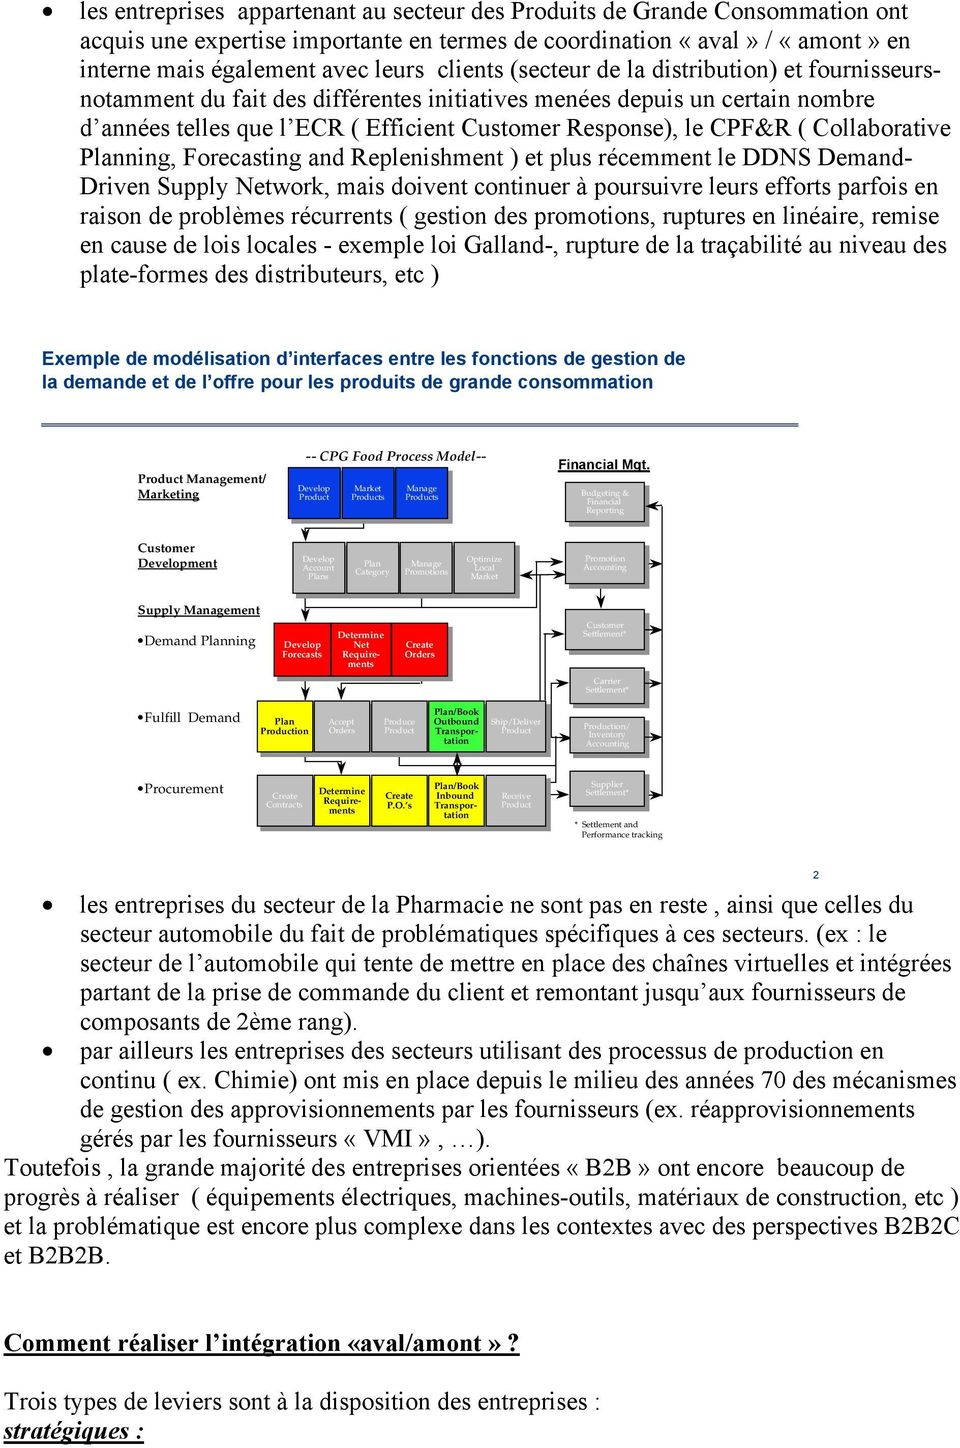 Collaborative Planning, Forecasting and Replenishment ) et plus récemment le DDNS Demand- Driven Supply Network, mais doivent continuer à poursuivre leurs efforts parfois en raison de problèmes